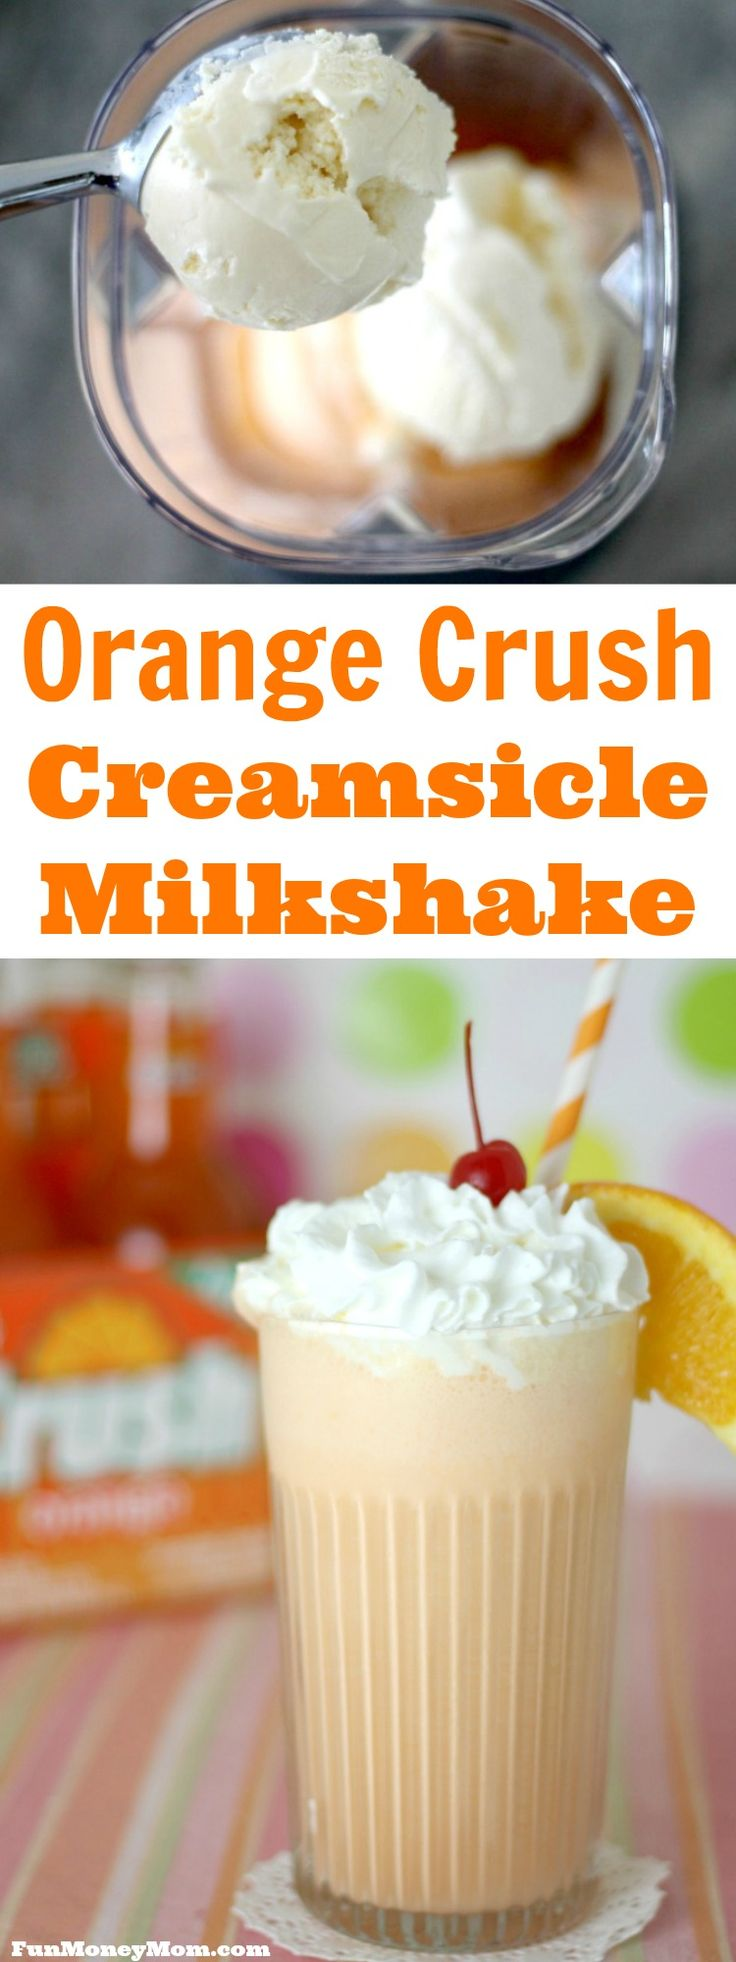 Want a fun ice cream dessert that will take you back to your childhood? This delicious Orange Crush milkshake will have you reminiscing about the good 'ol days!